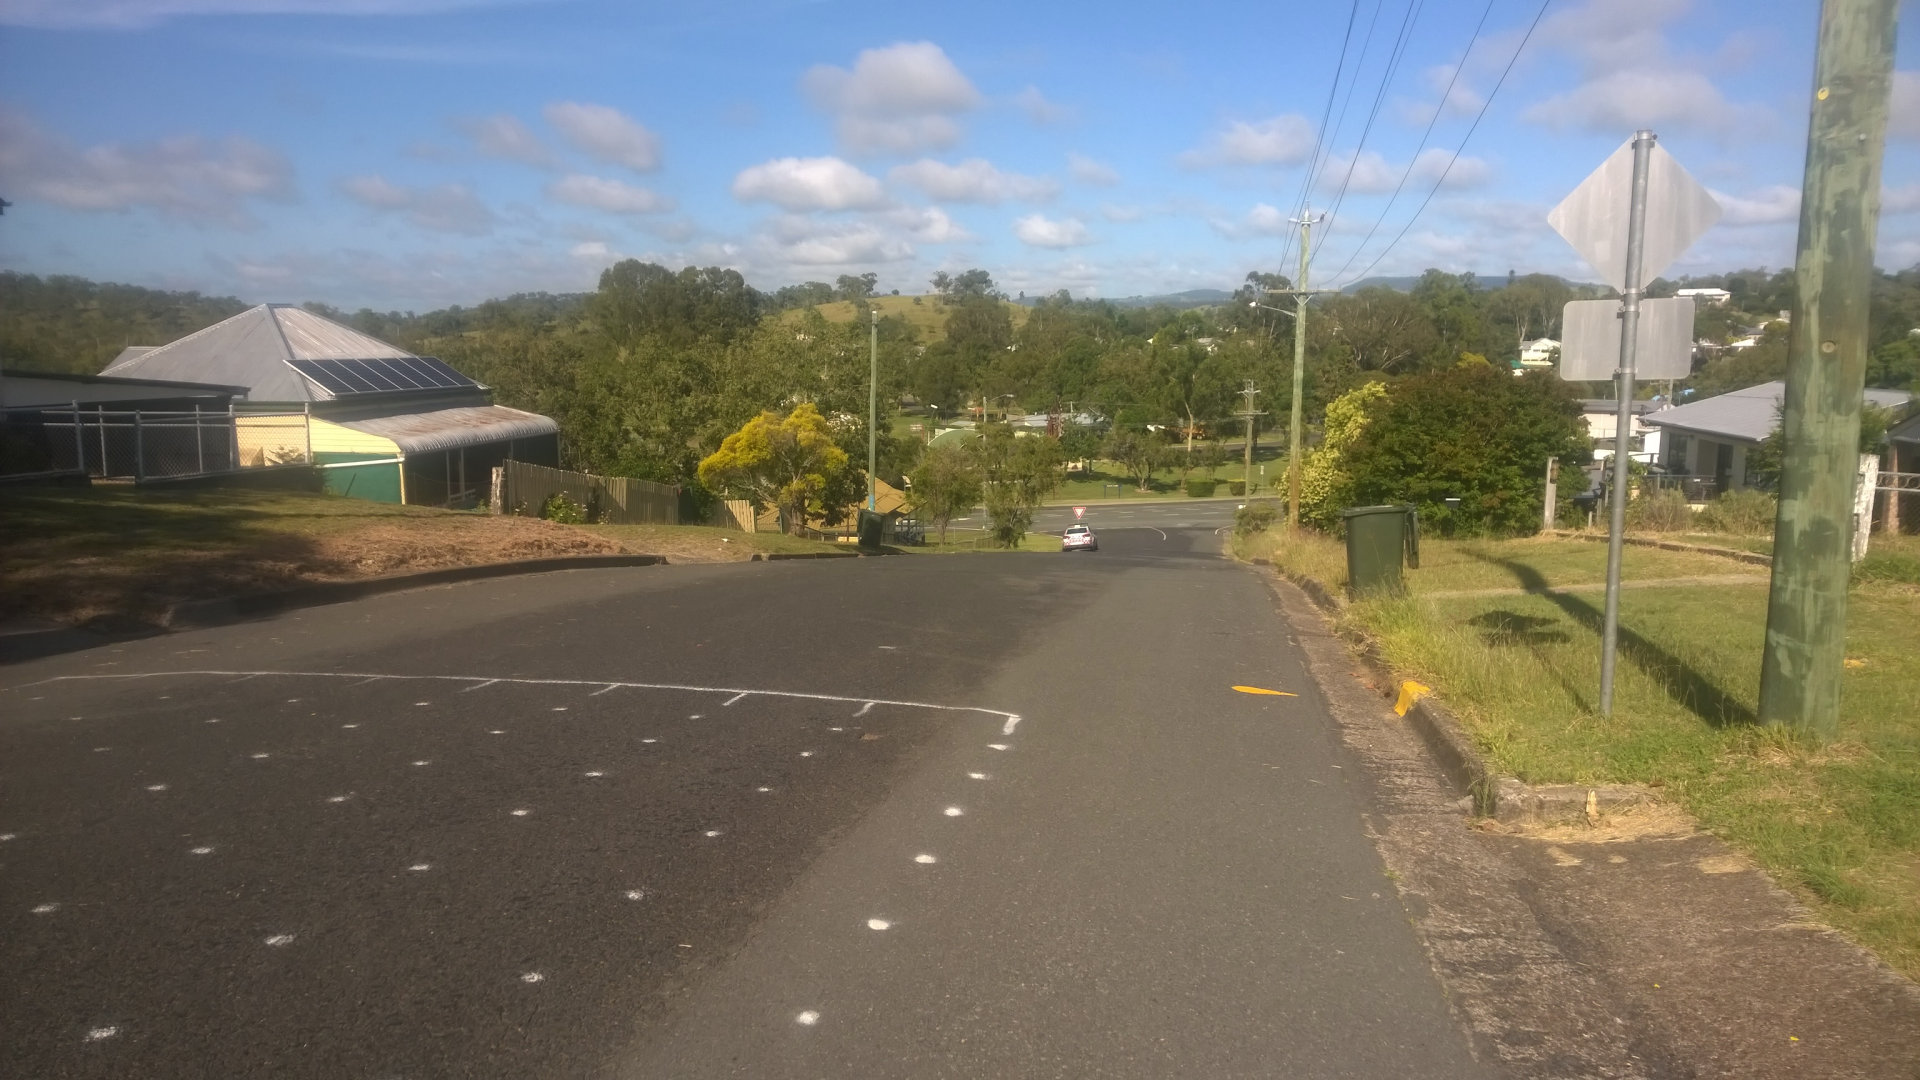 Looking down the Policeman's Hill with lane markings for the Pumpkin Festival on the road. The hill used during the Goomeri Pumpkin Festival, an annual event held on the last Sunday in May